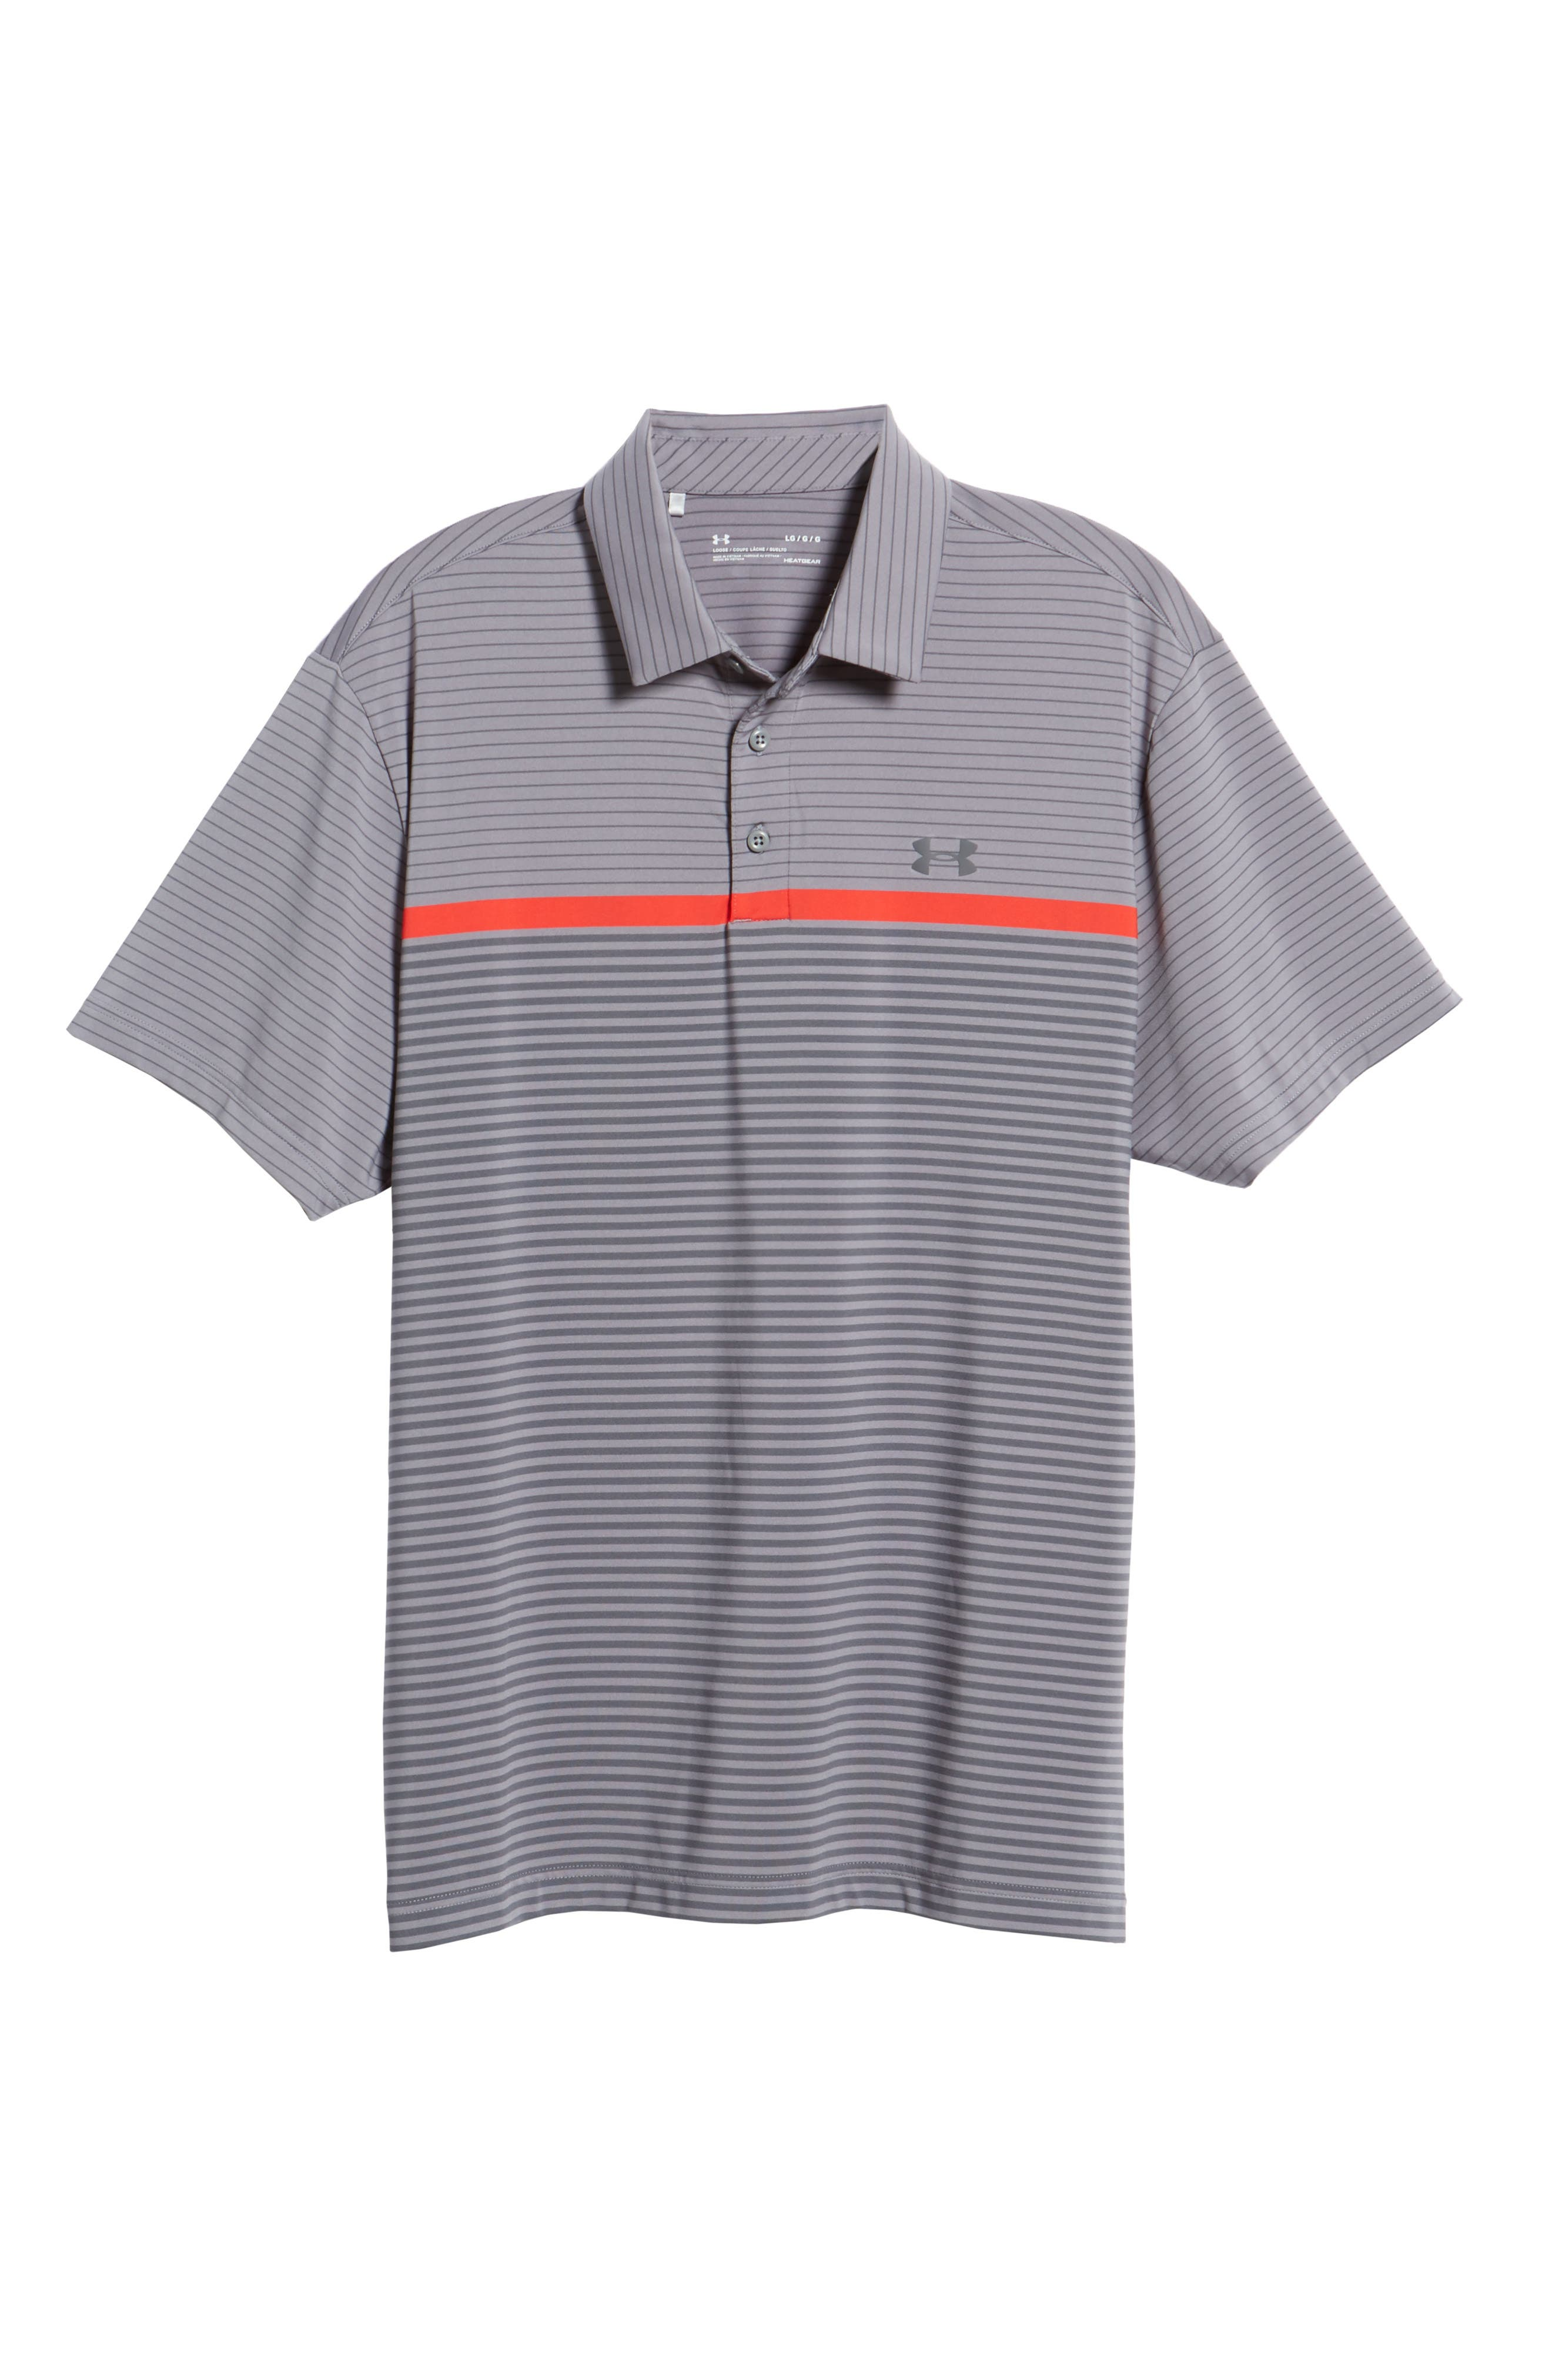 'Playoff' Loose Fit Short Sleeve Polo,                             Alternate thumbnail 6, color,                             020